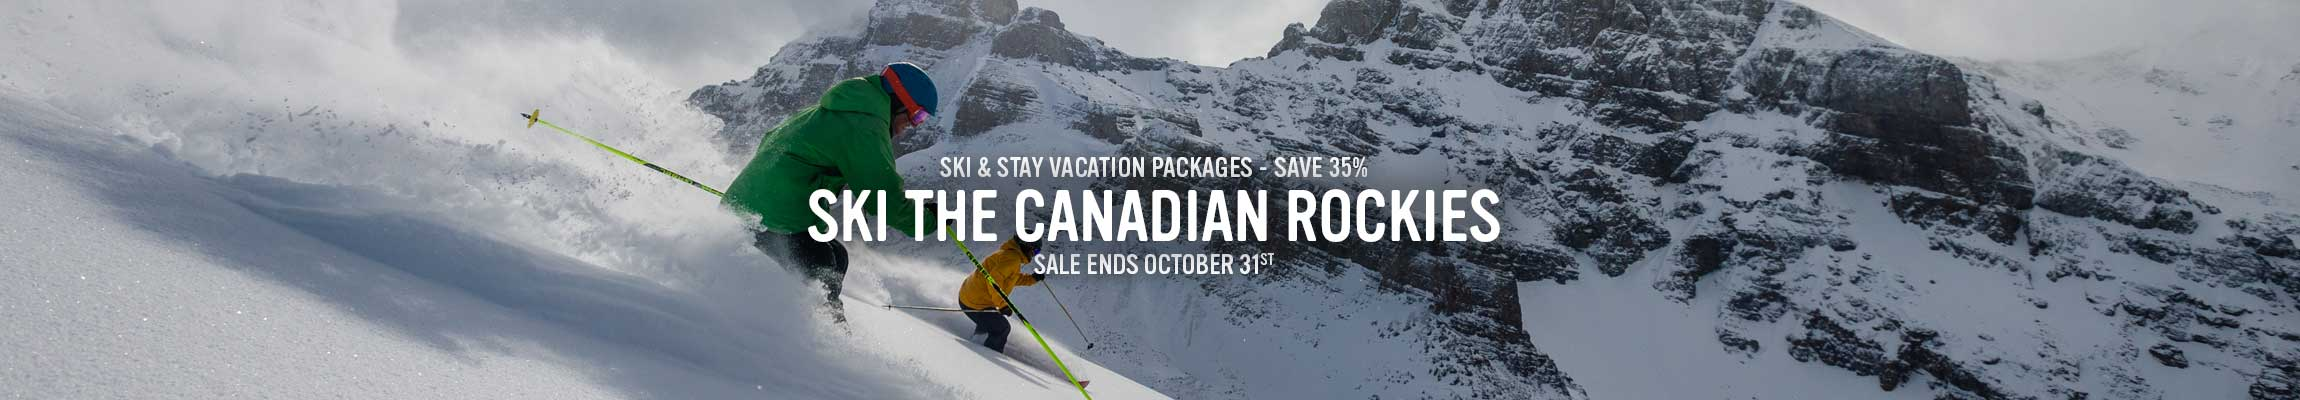 Ski & Stay Vacation Packages